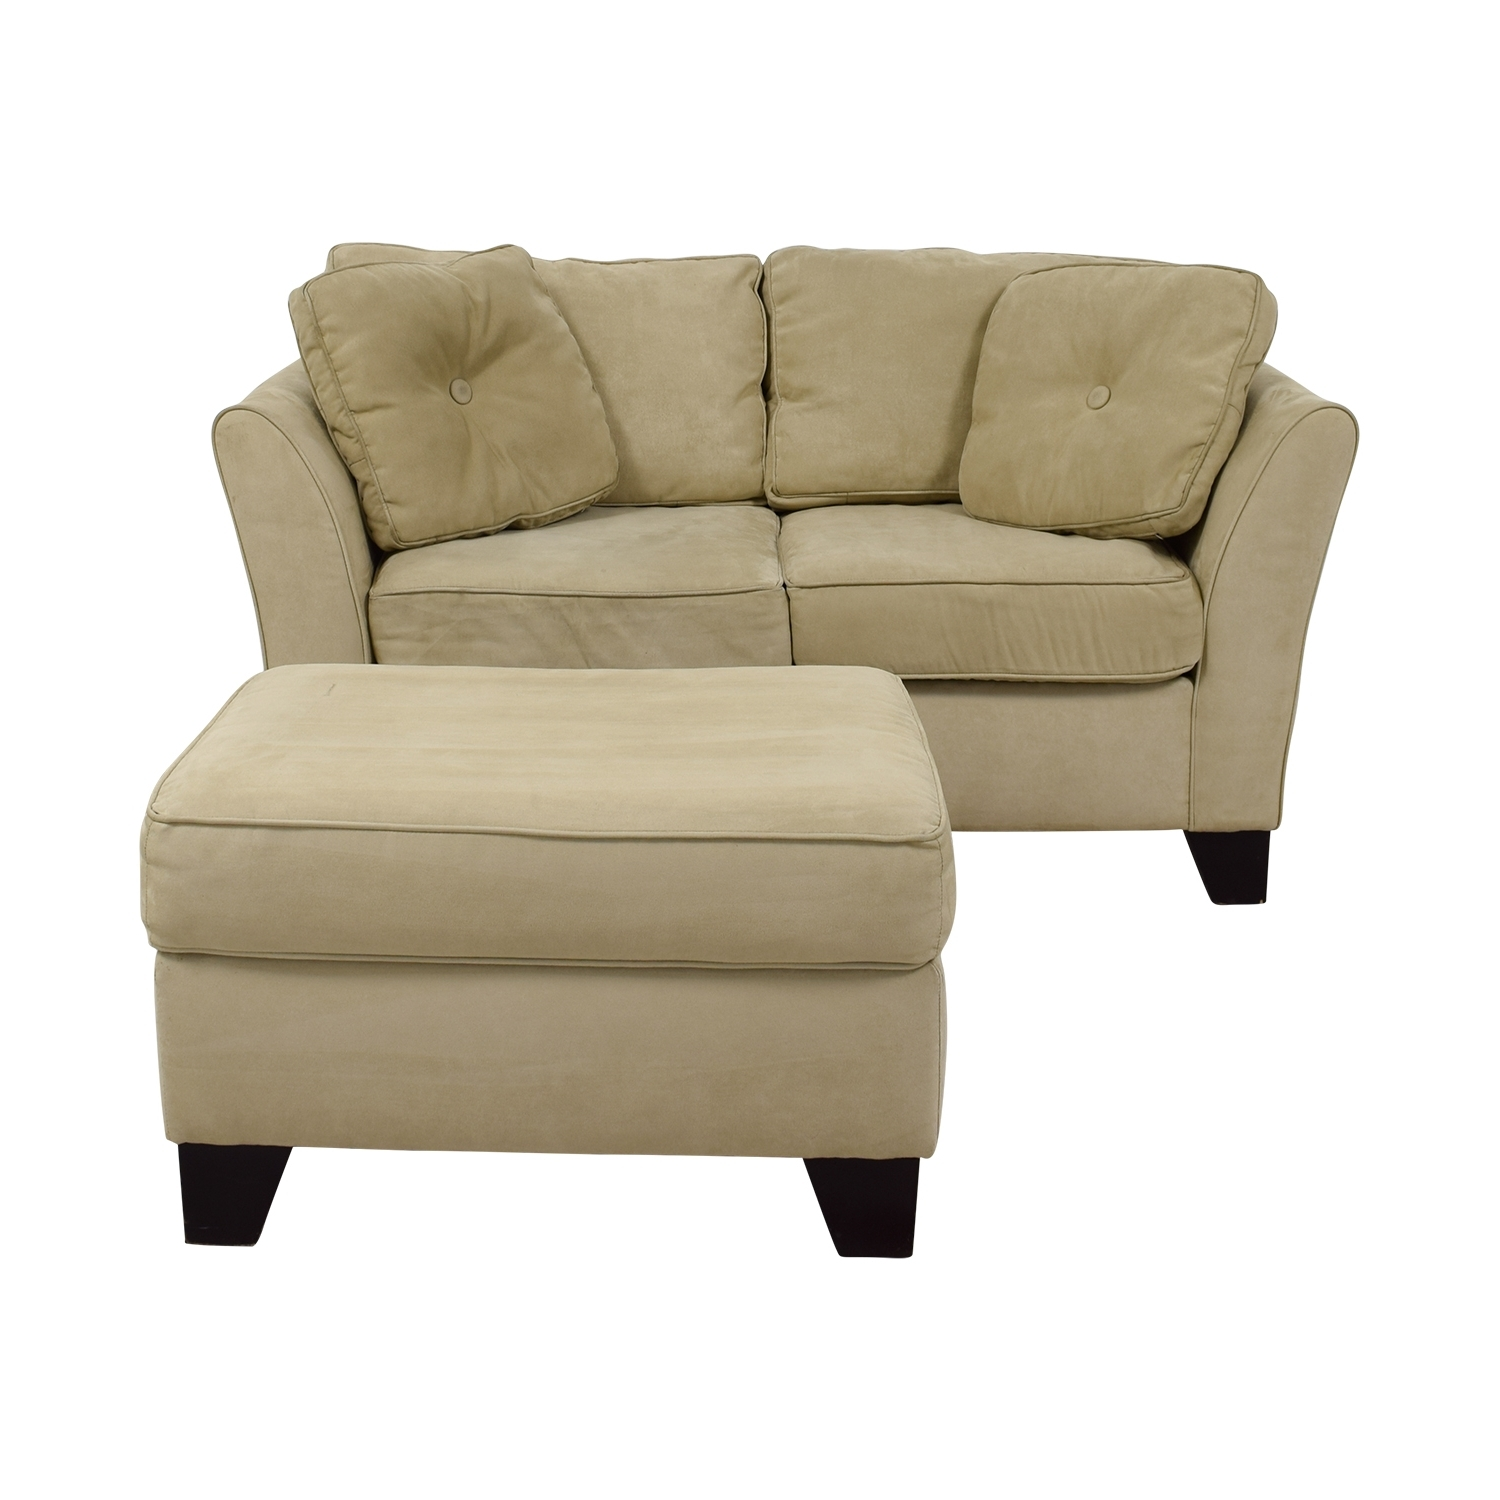 [%86% Off – Macy's Macy's Tan Loveseat With Ottoman / Sofas With Regard To Latest Loveseats With Ottoman|Loveseats With Ottoman Throughout Current 86% Off – Macy's Macy's Tan Loveseat With Ottoman / Sofas|Most Popular Loveseats With Ottoman In 86% Off – Macy's Macy's Tan Loveseat With Ottoman / Sofas|2017 86% Off – Macy's Macy's Tan Loveseat With Ottoman / Sofas Within Loveseats With Ottoman%] (View 8 of 15)